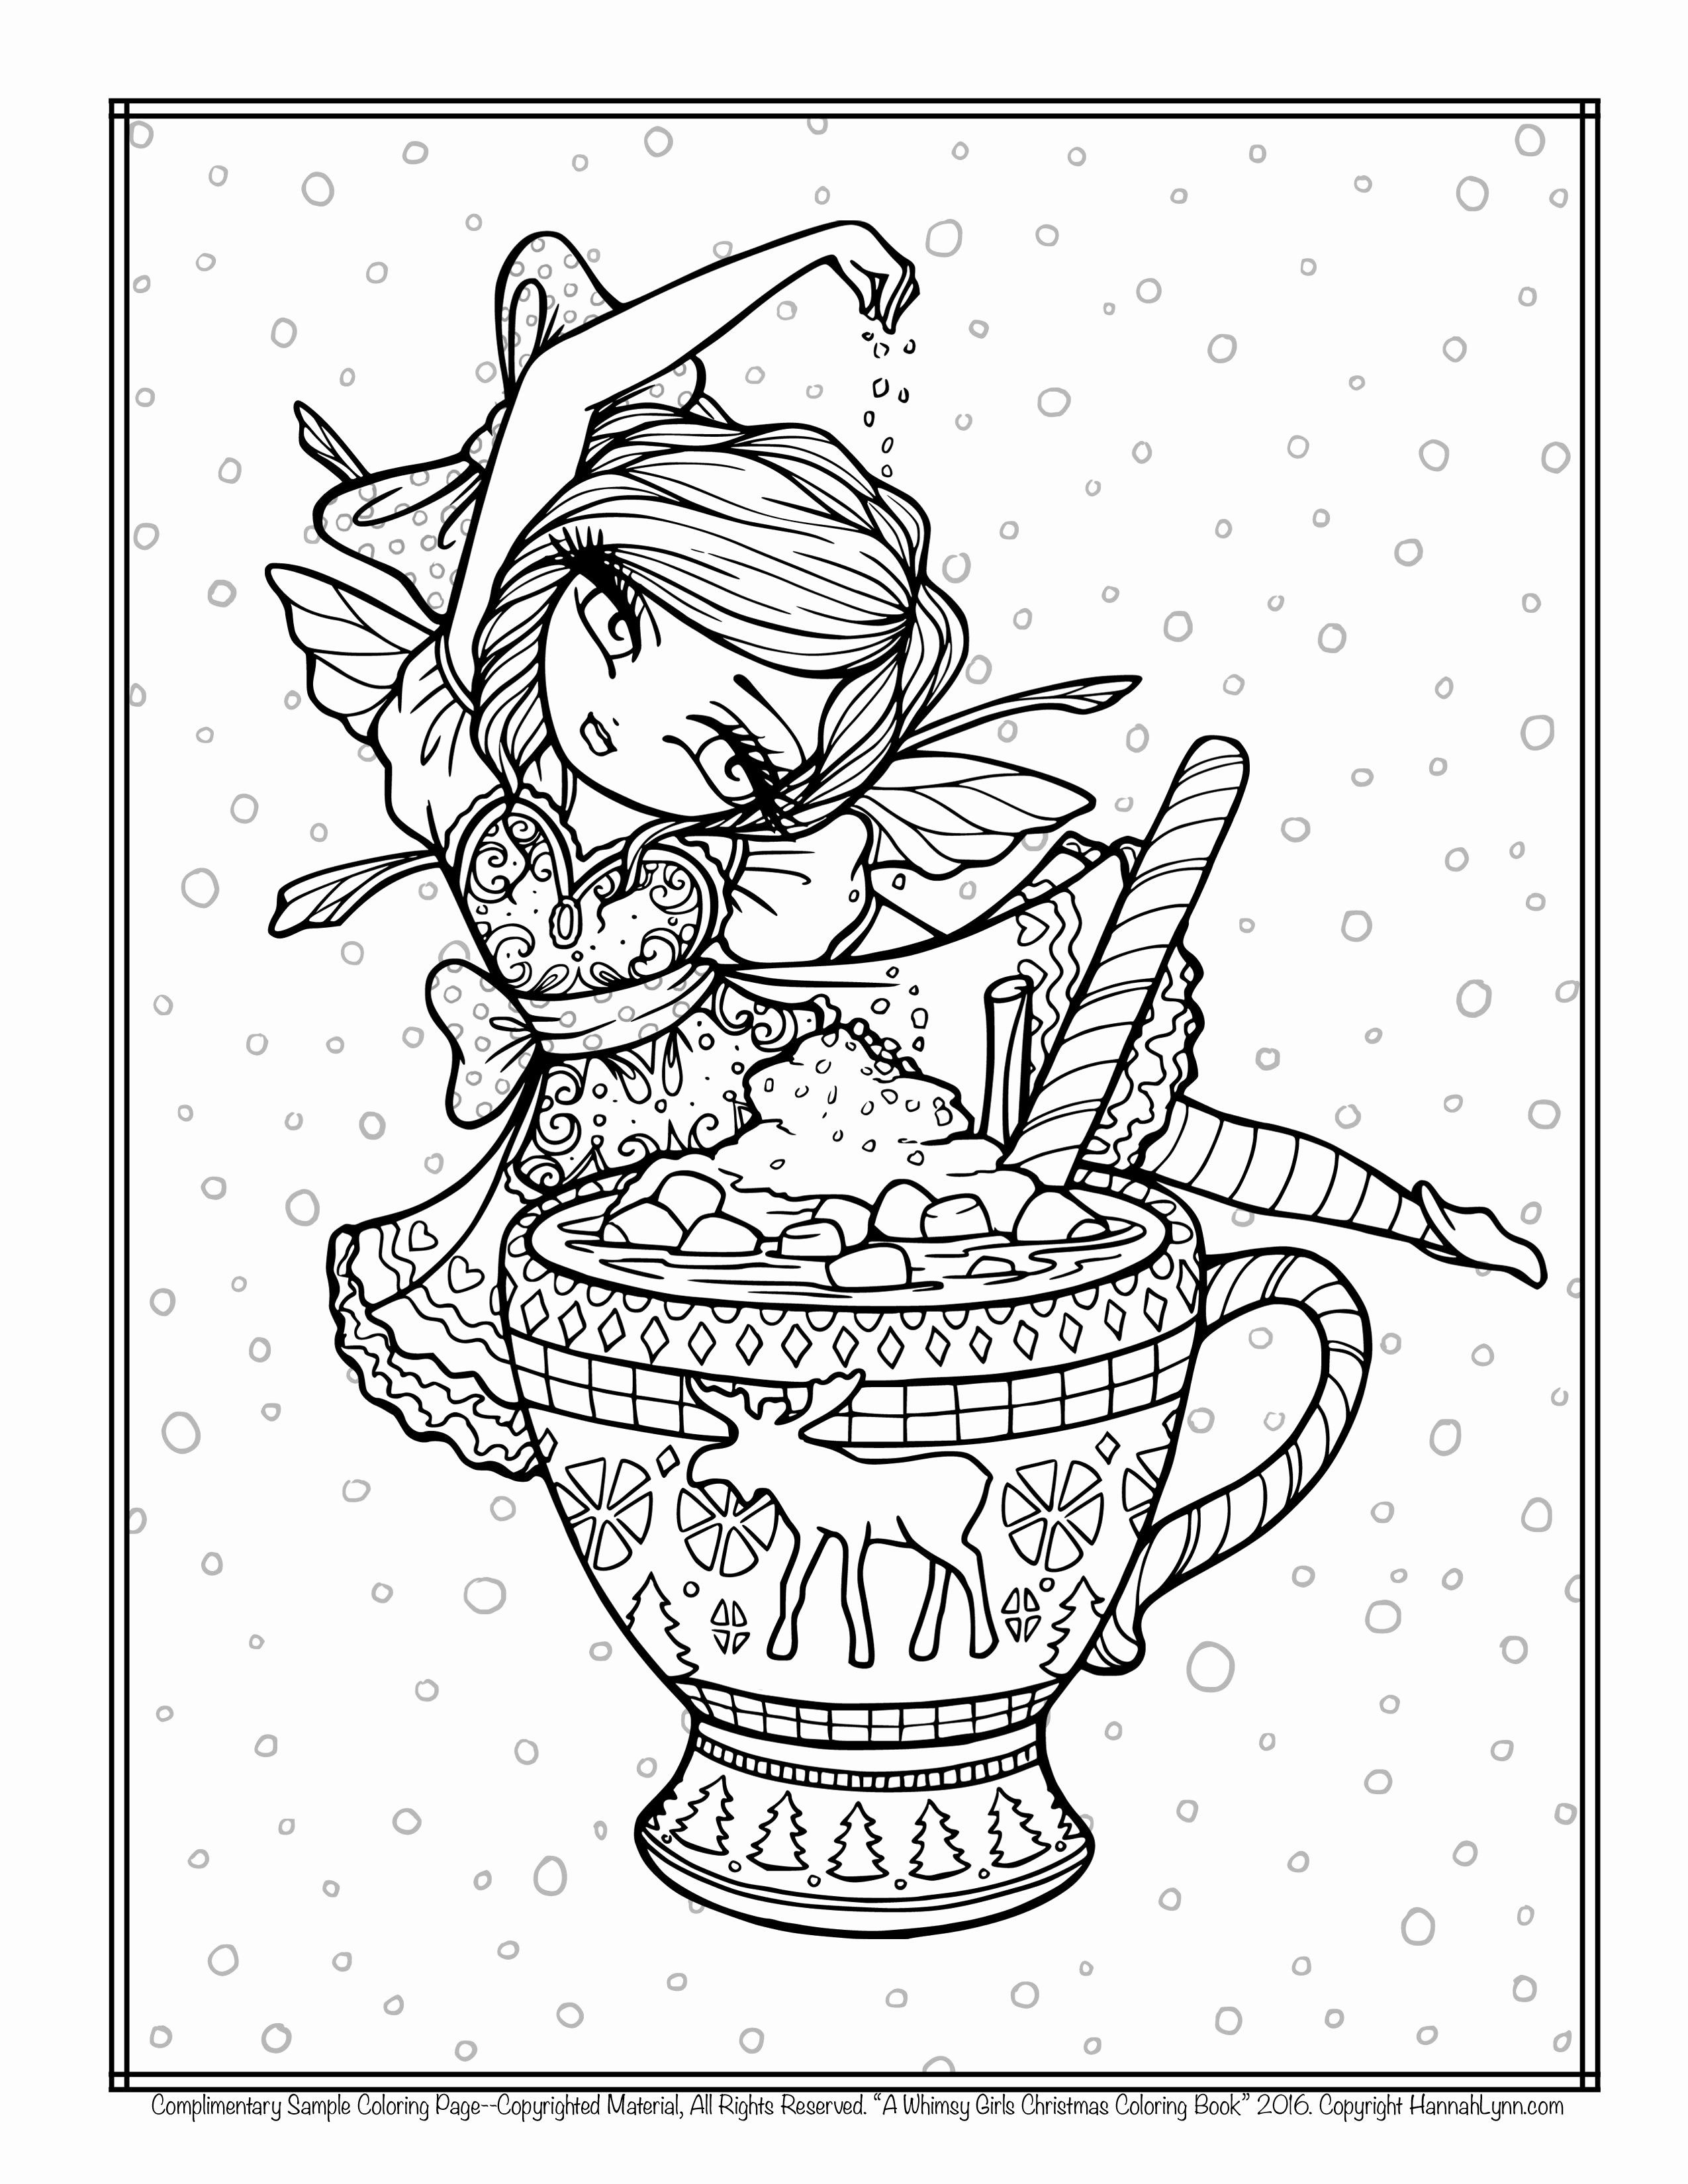 Hot Cocoa Coloring Page Inspirational Free Hannah Lynn Coloring Page Hannahlynn Hot Cocoa Fairy Christ In 2020 Fairy Coloring Fairy Coloring Pages Emoji Coloring Pages